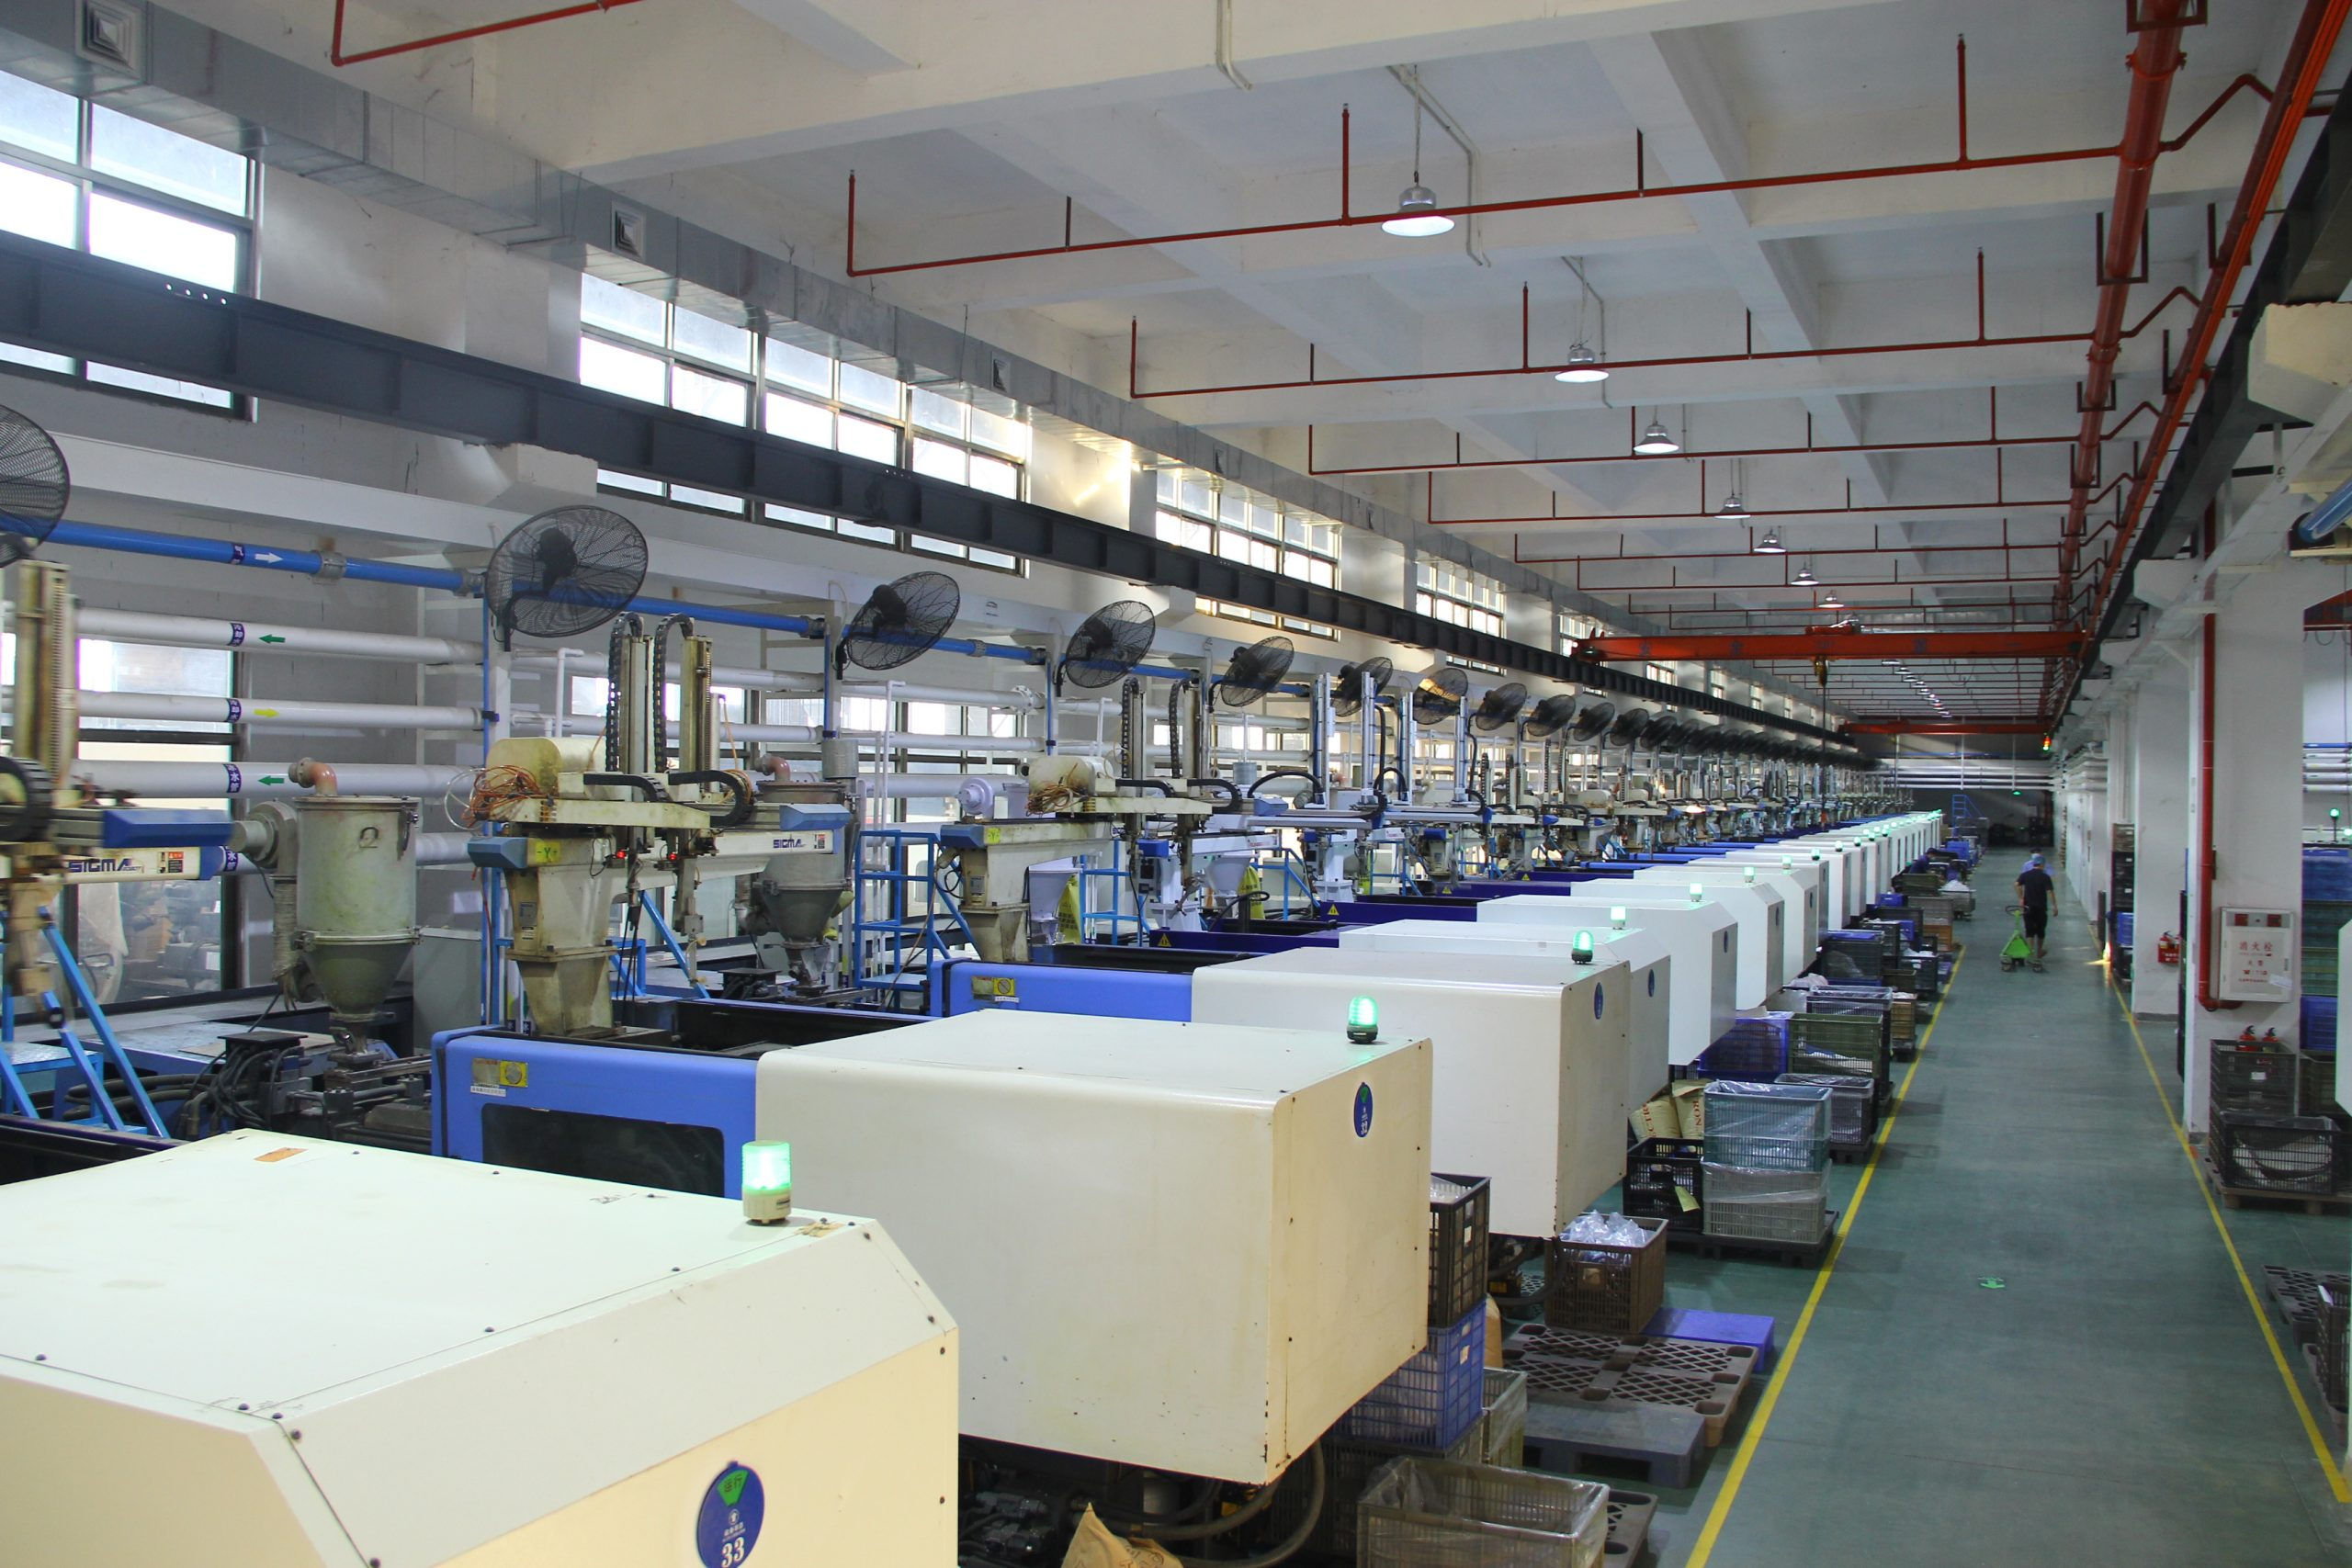 We are a Plastic Injection Molding factory in Dongguan, China